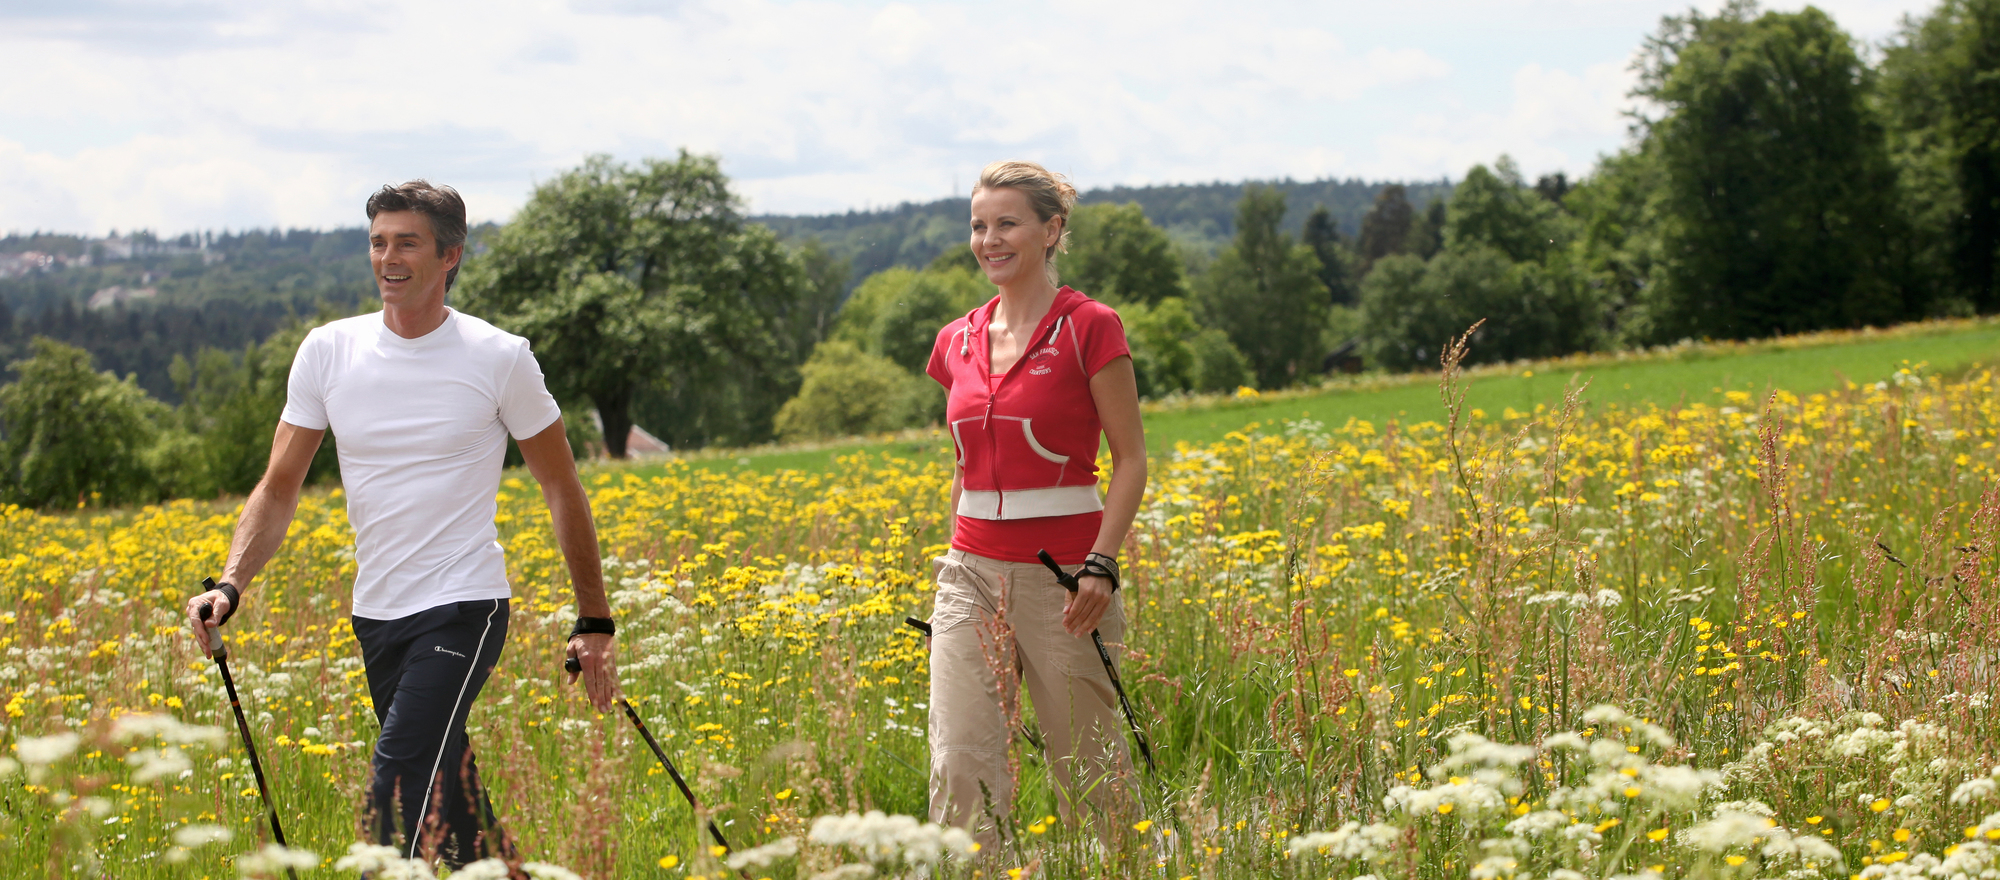 Hiking at the Ringhotel Moenchs Waldhotel in Unterreichenbach, 4-star hotel in the Black Forest